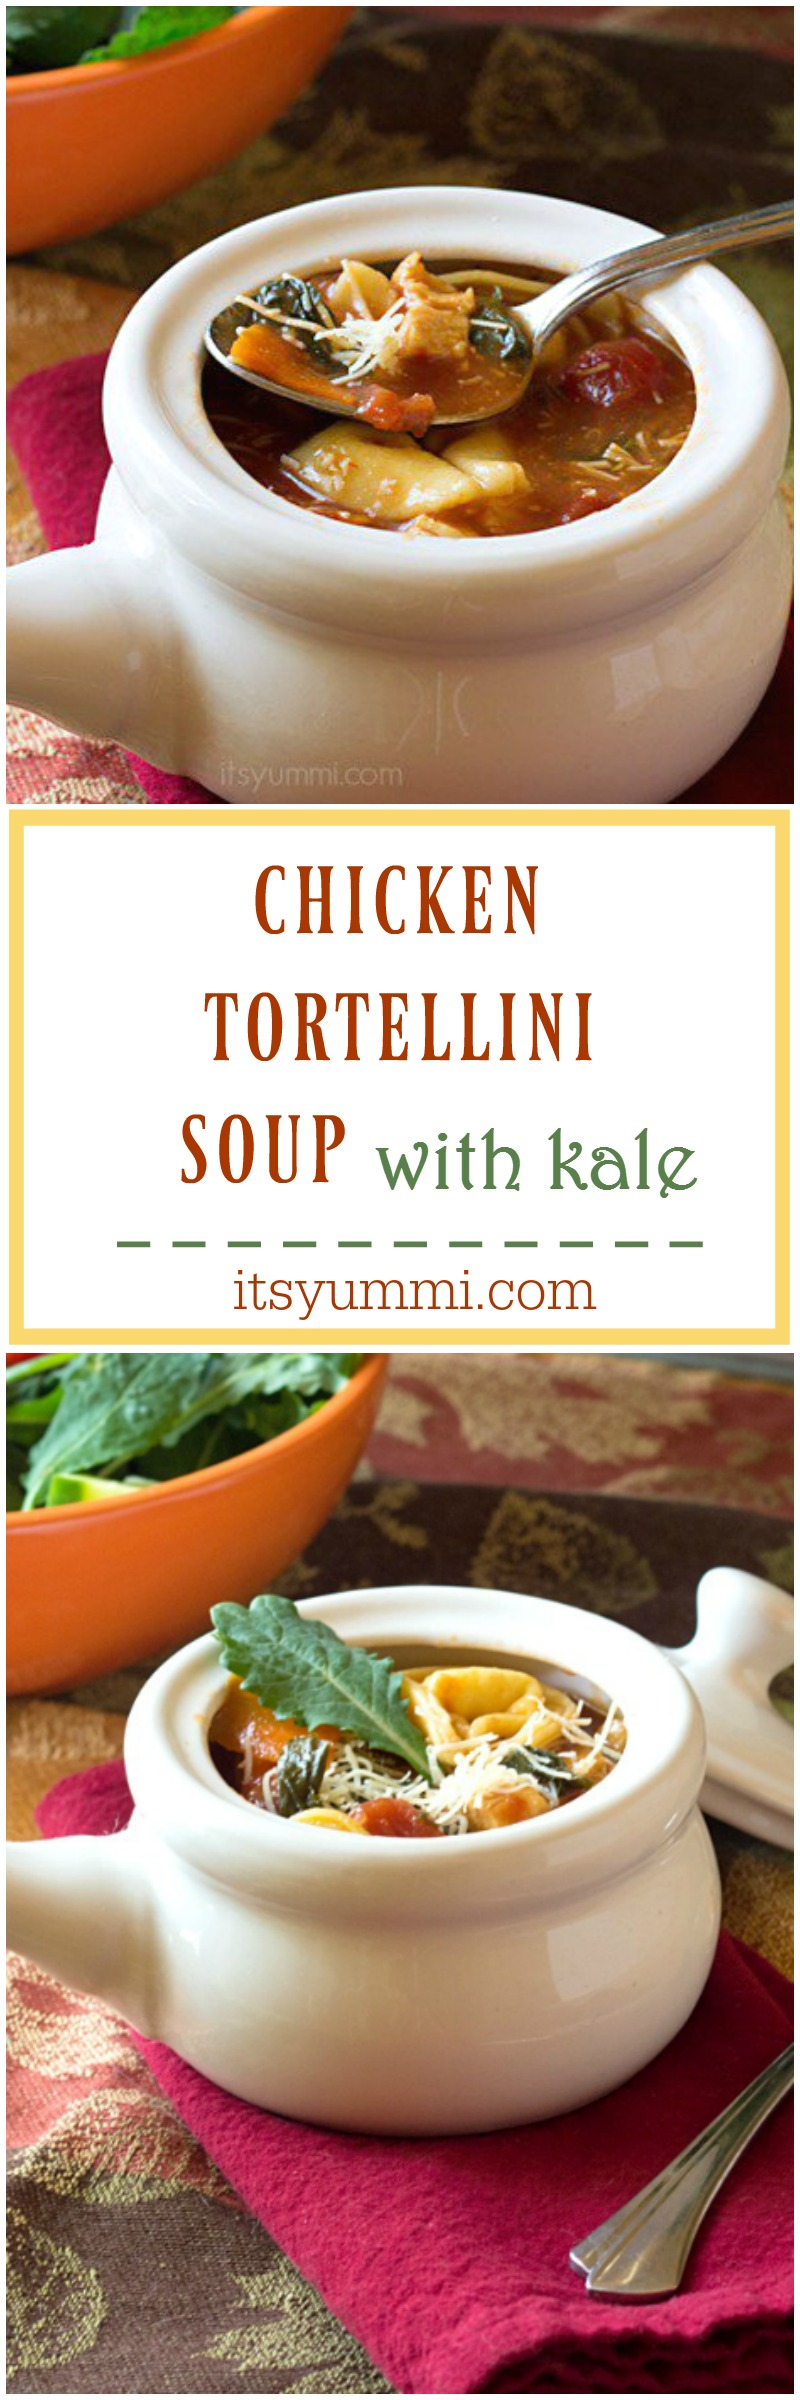 This hearty, broth-based chicken tortellini soup is filled with pieces of grilled chicken, cheese tortellini, crisp vegetables, and 100% organic baby kale. It's comfort food in a bowl! Recipe on itsyummi.com